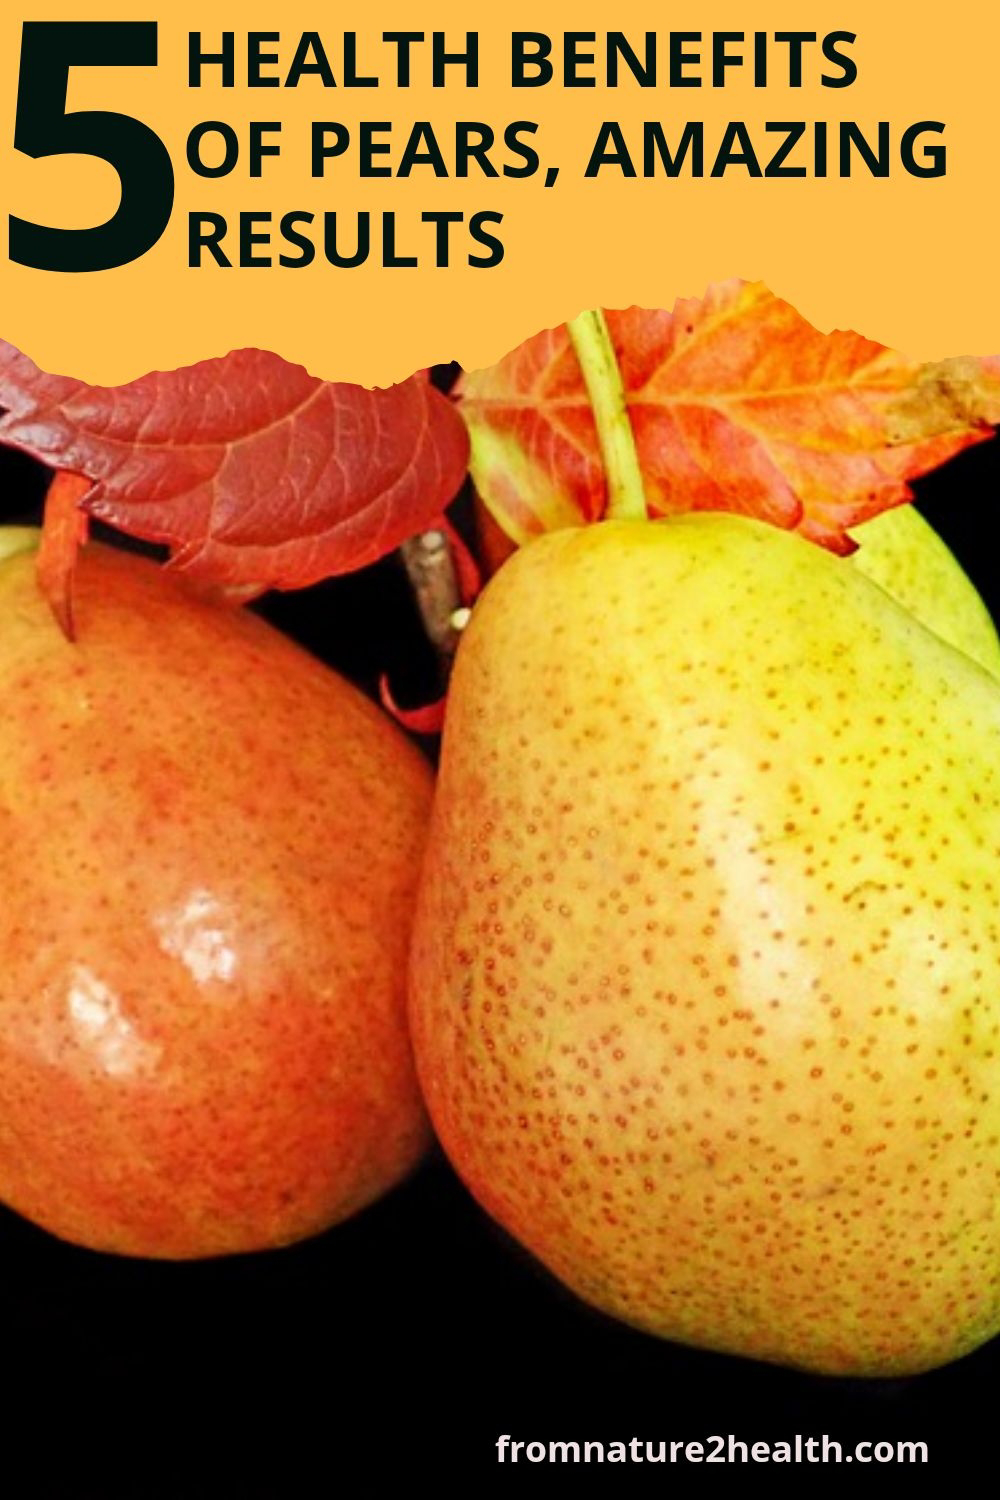 5 Health Benefits of Pears for Cancer, Diabetes, Digestion, Heart Disease, Weight Loss